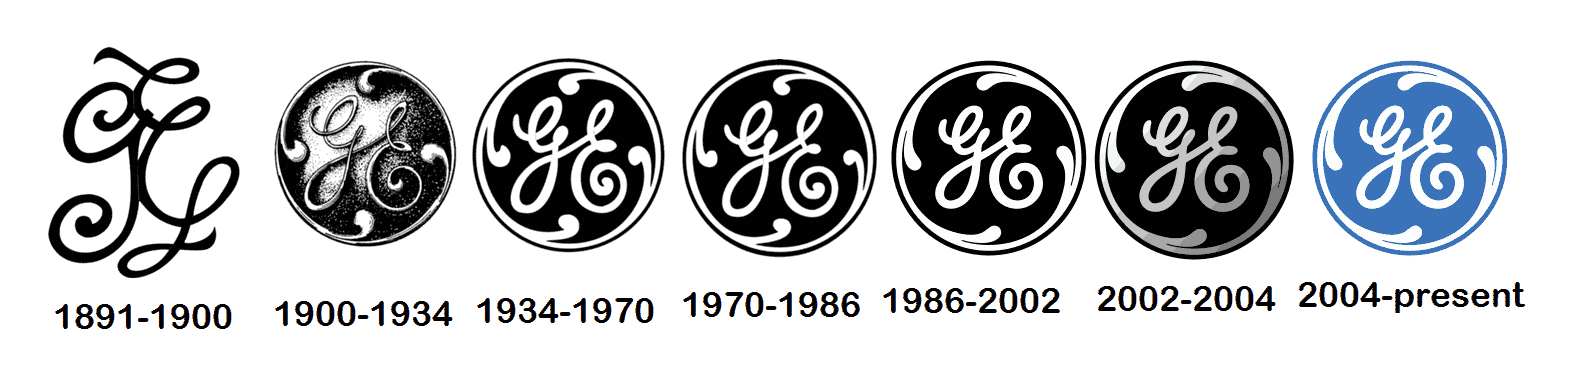 "Originally designed to be a badge on the center of a fan, the GE logo has changed to incorporate the company color (blue, representing stability, unity intelligence, and conservatism.) and a new tag line. ""Imagination at work"" now replaces ""we bring good things to life."""